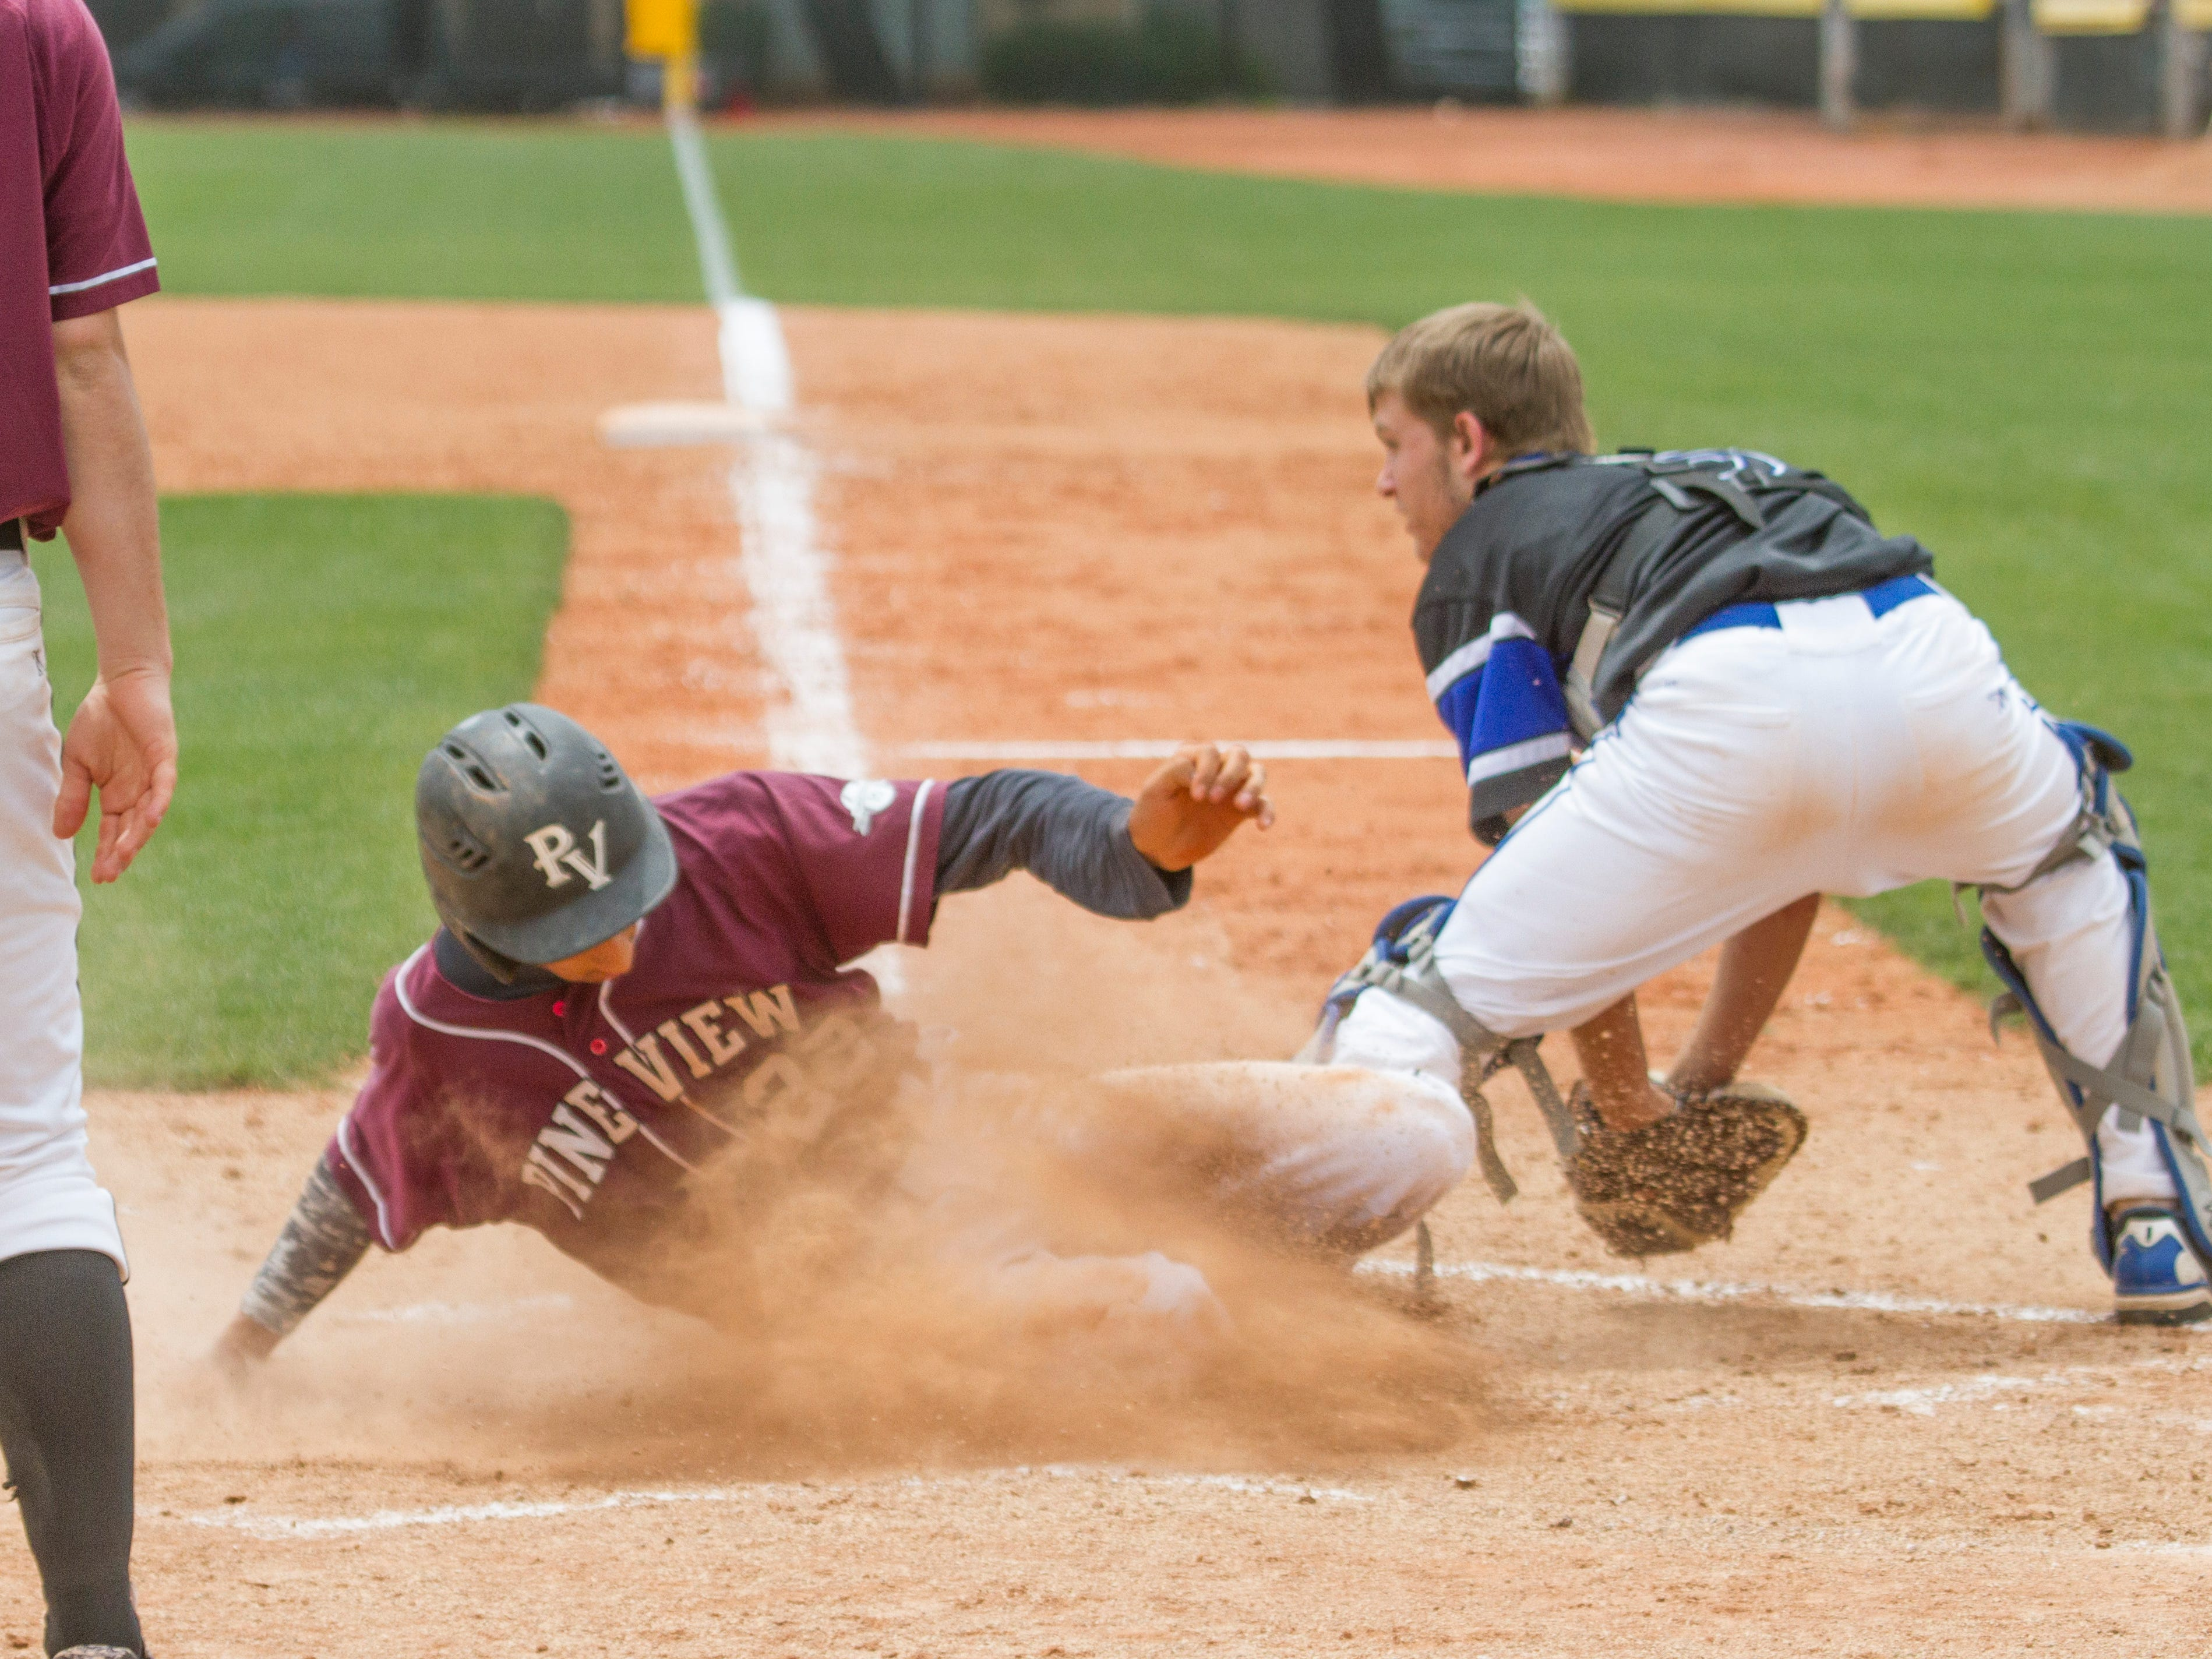 A Pine View runner slides at the plate as the Carbon catcher takes the throw Thursday.